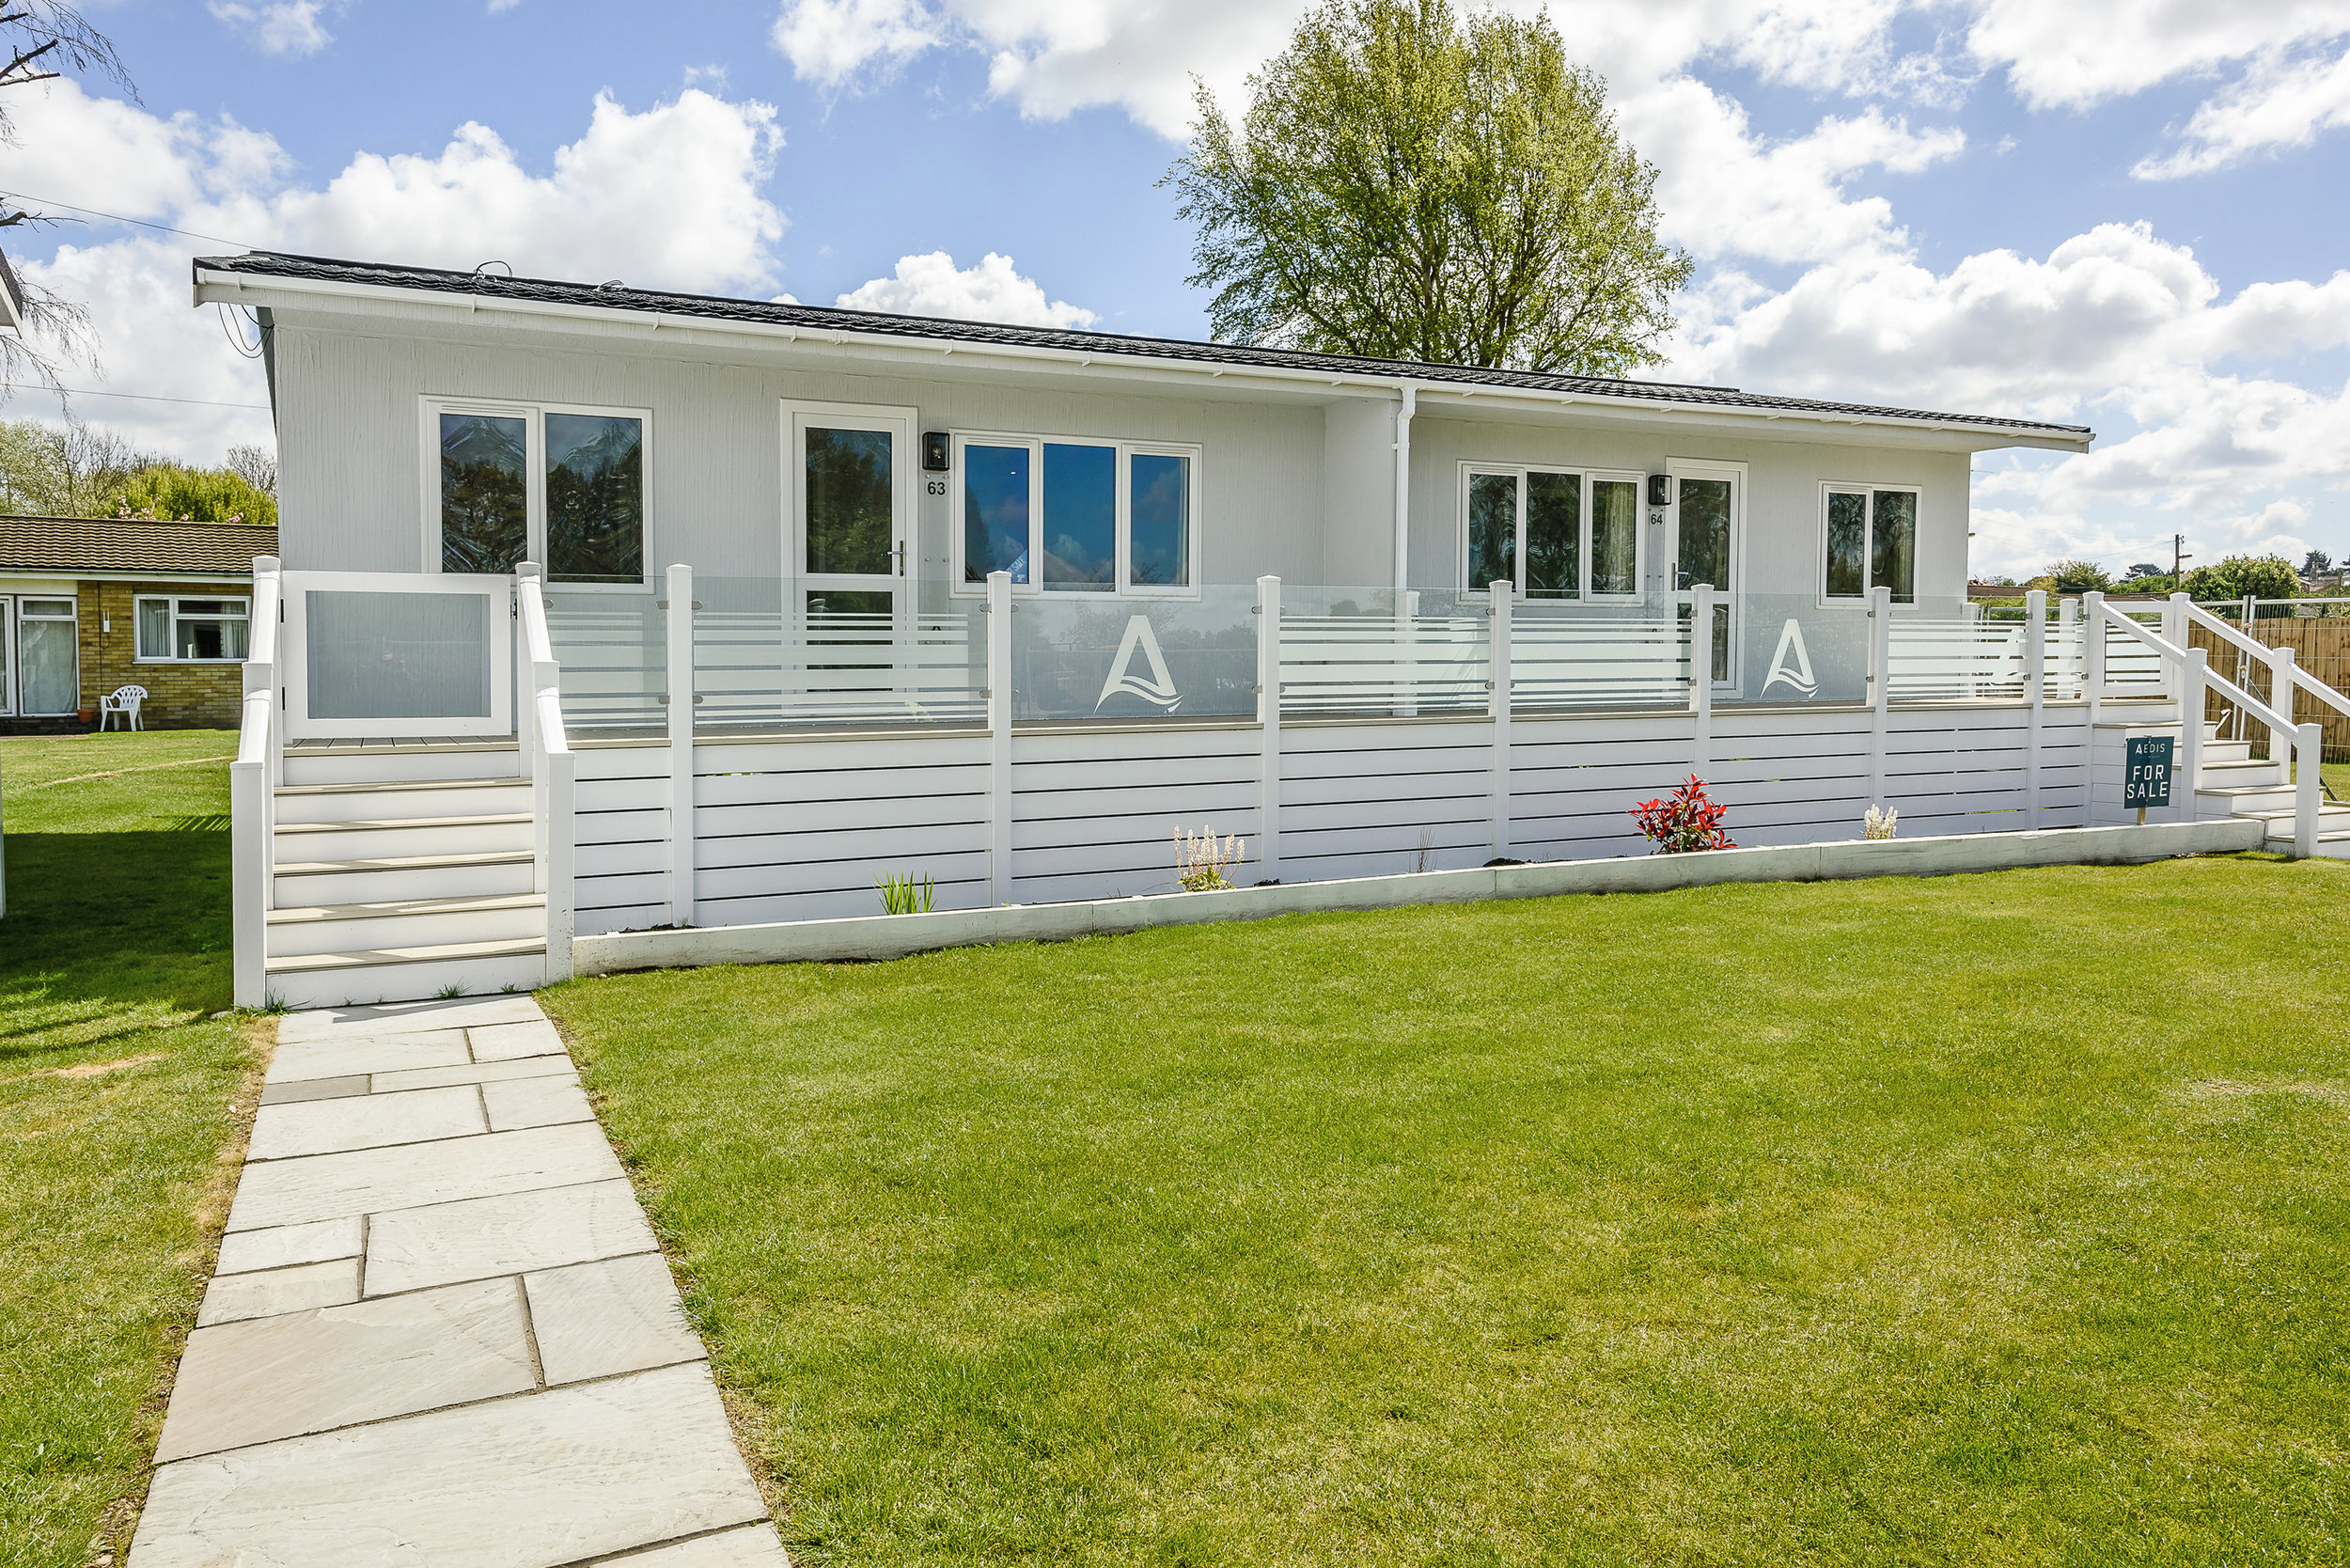 Image: A new holiday property with 2 bedrooms, luxury decking, unrivalled views of the Broads National Park and a 125 year lease to boot - all round a sound investment.